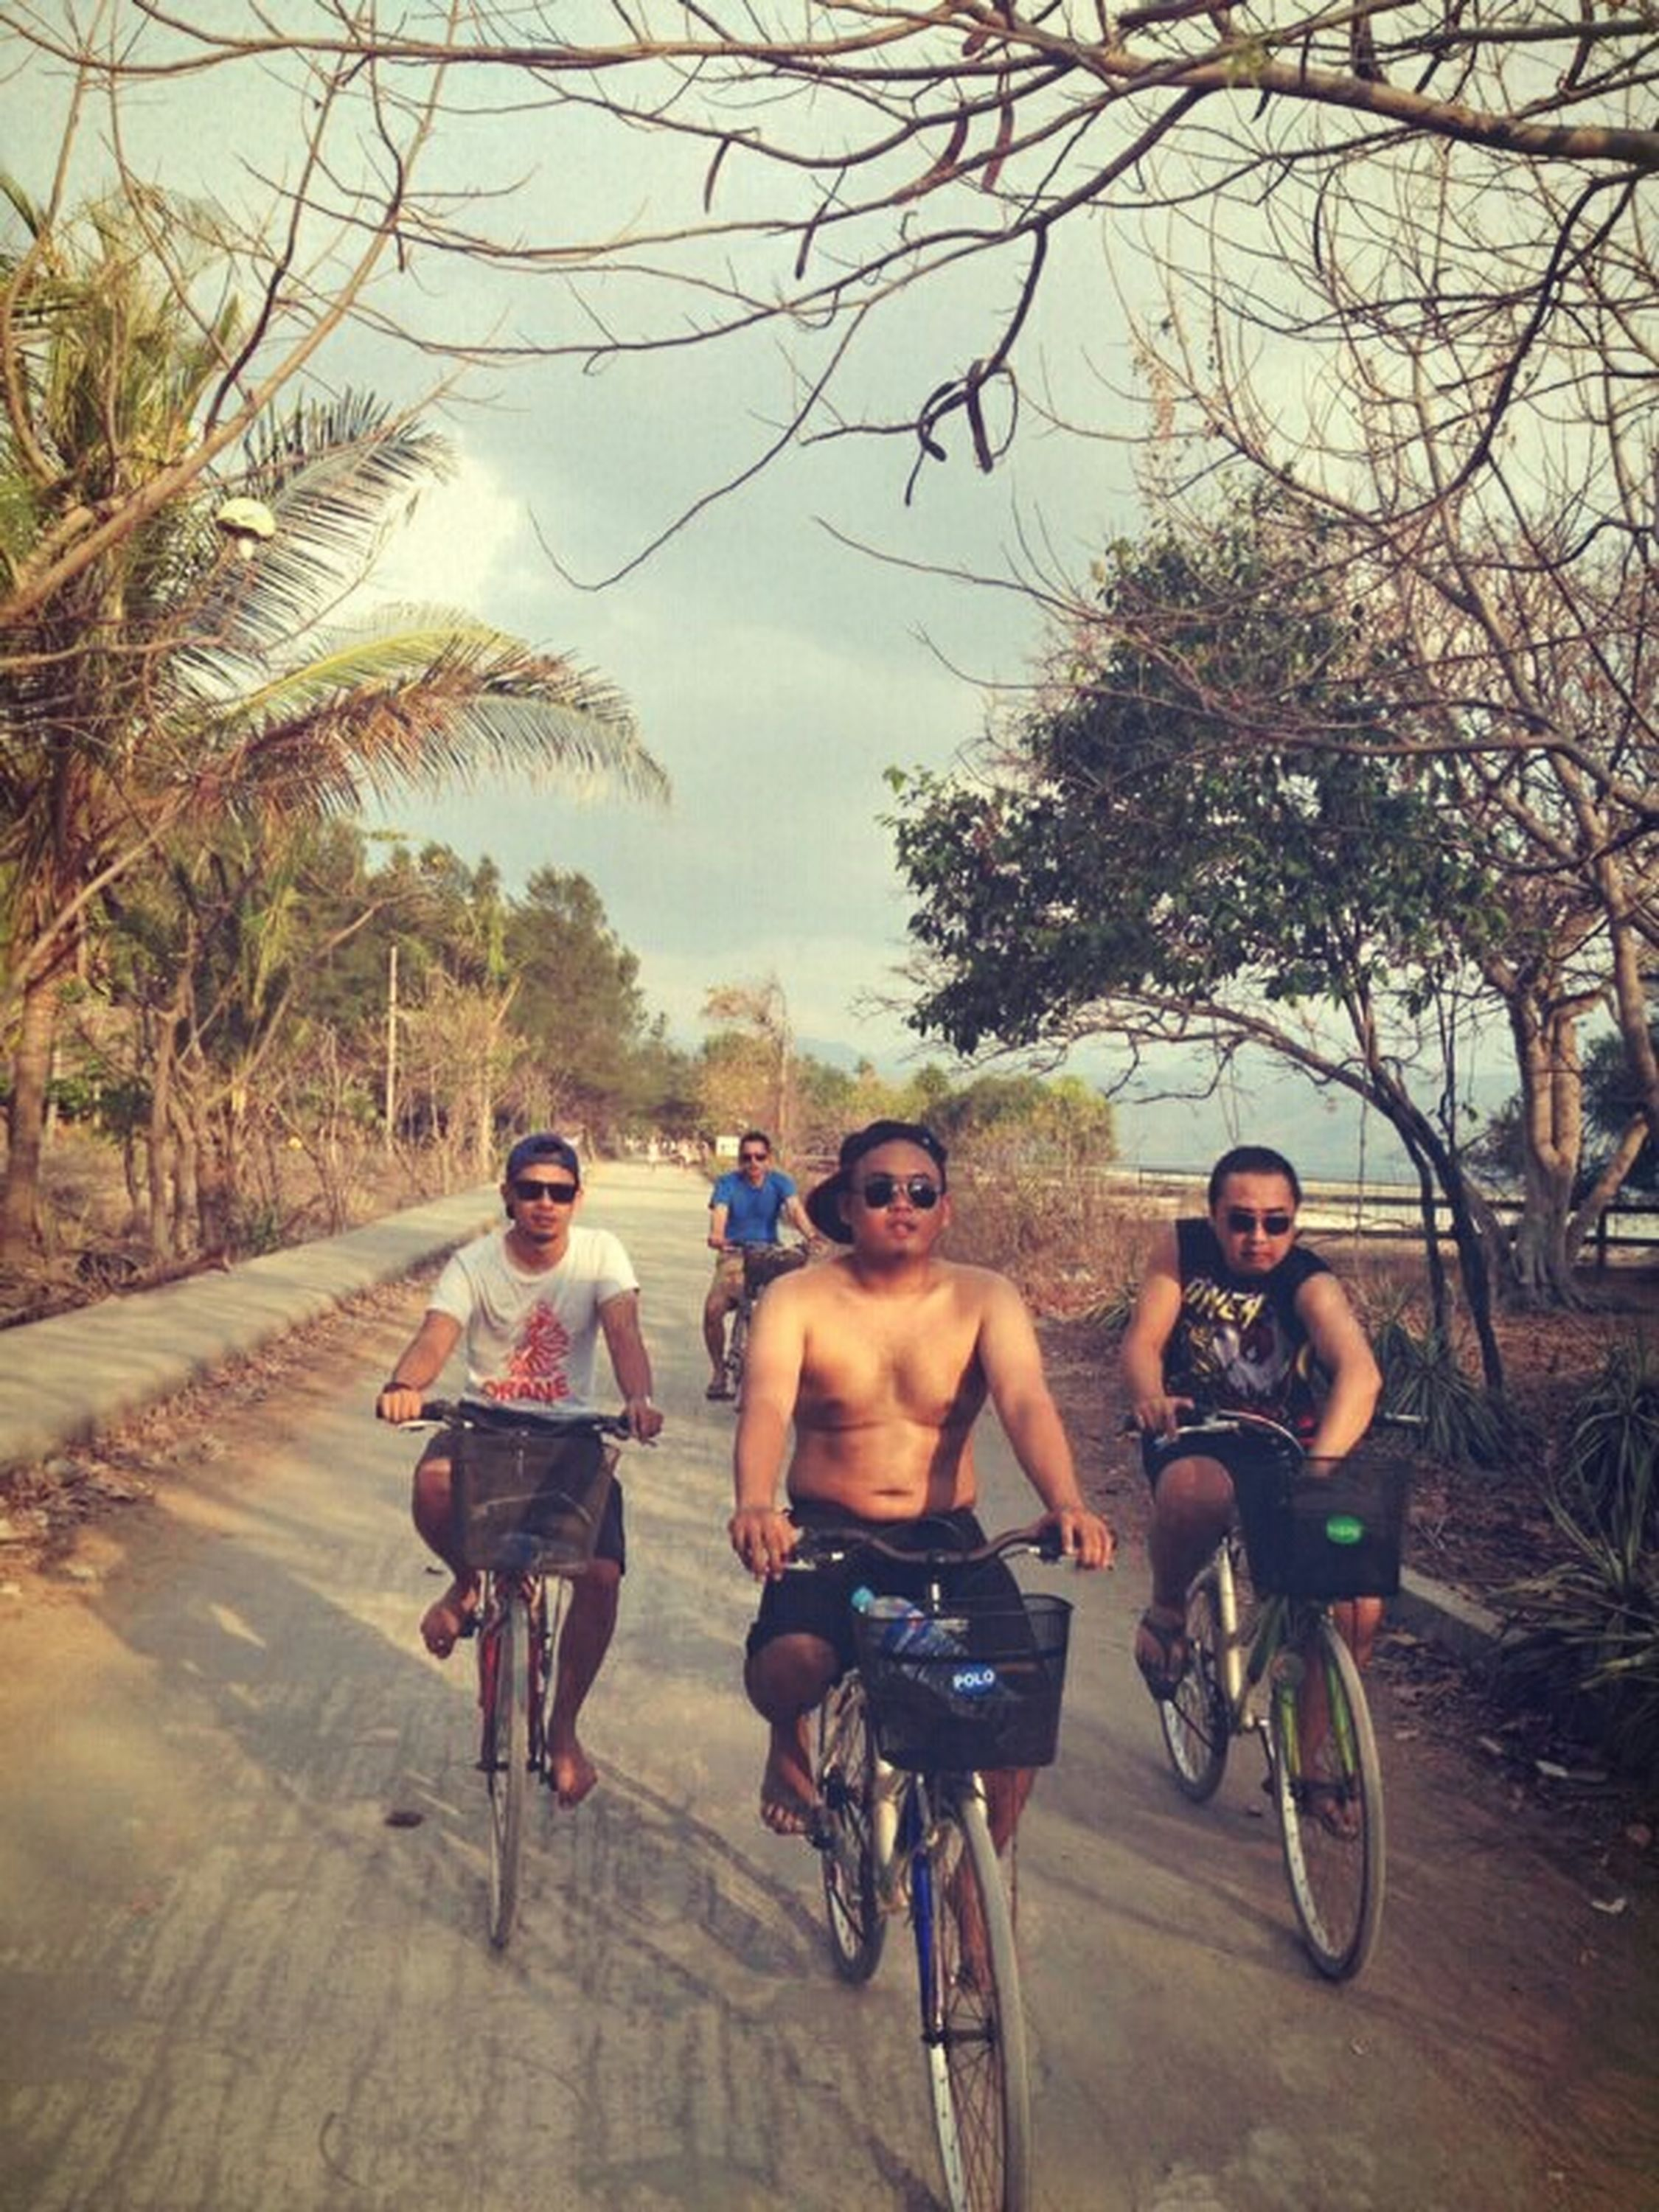 The Places I've Been Today Lombok Island INDONESIA Sunset Frienship Friendship Friends Relaxing Sunset Bycicling